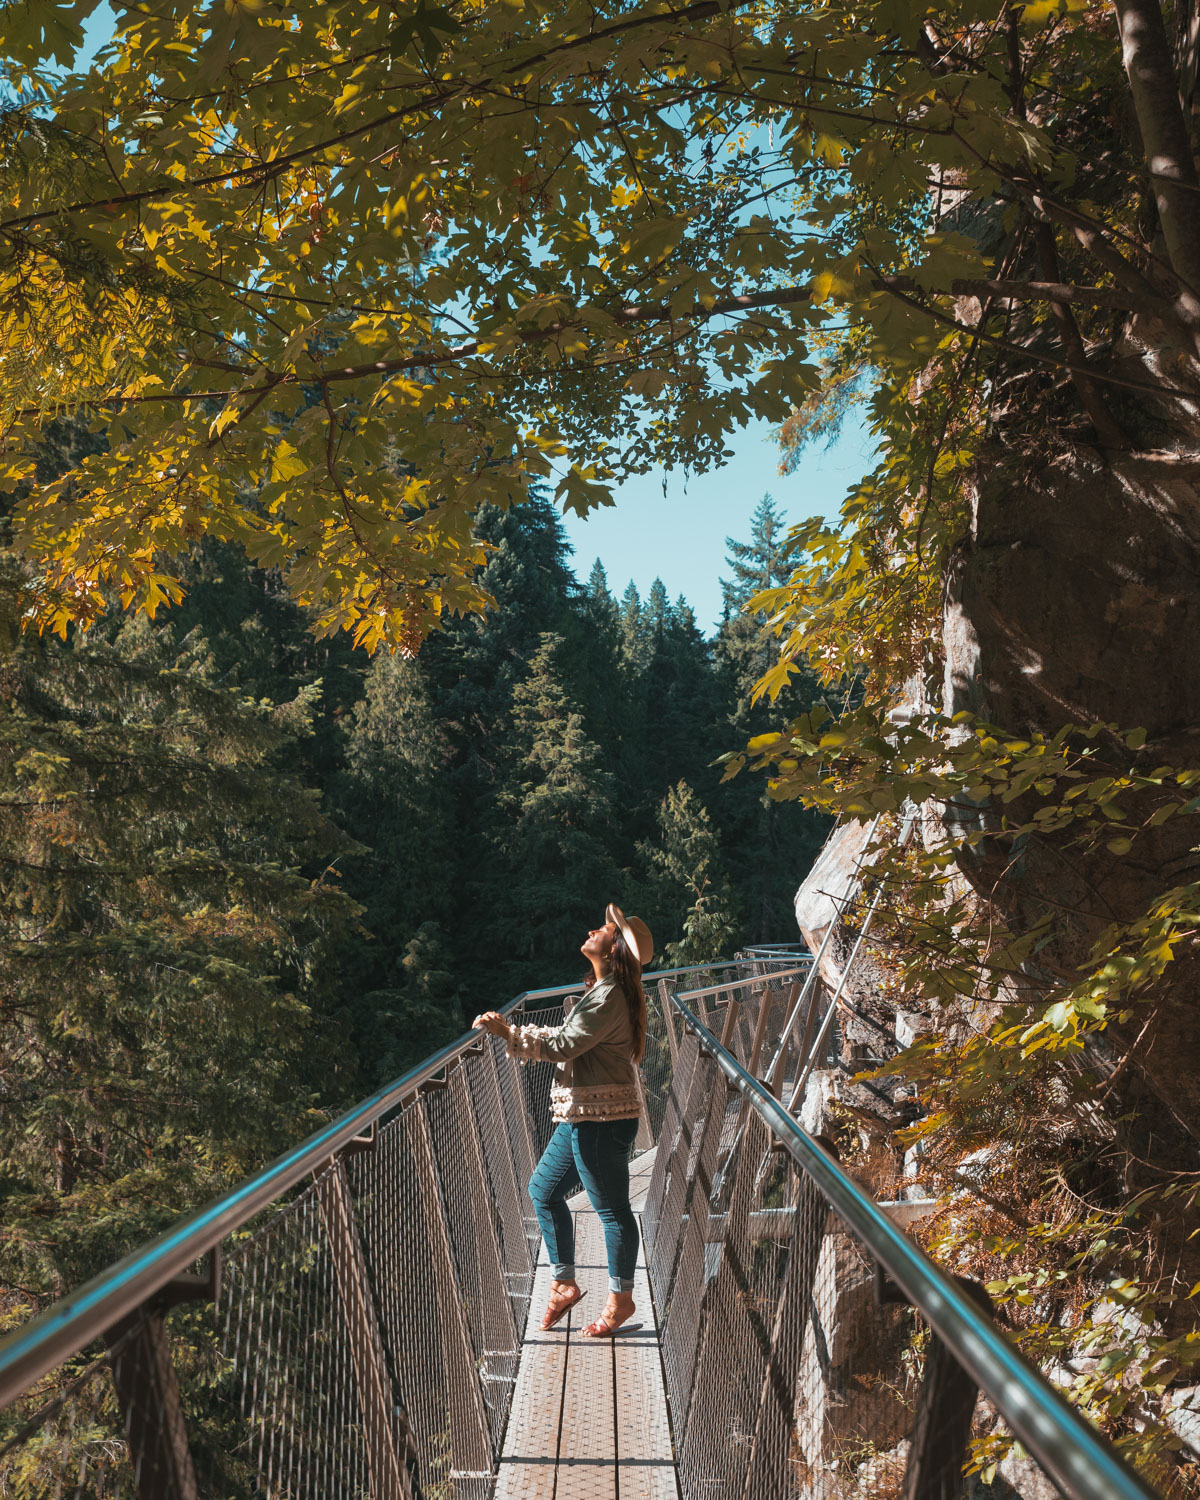 CLIFFWALK at Capilano Suspension Bridge Park // The Quick Guide to Visiting Vancouver, BC #readysetjetset